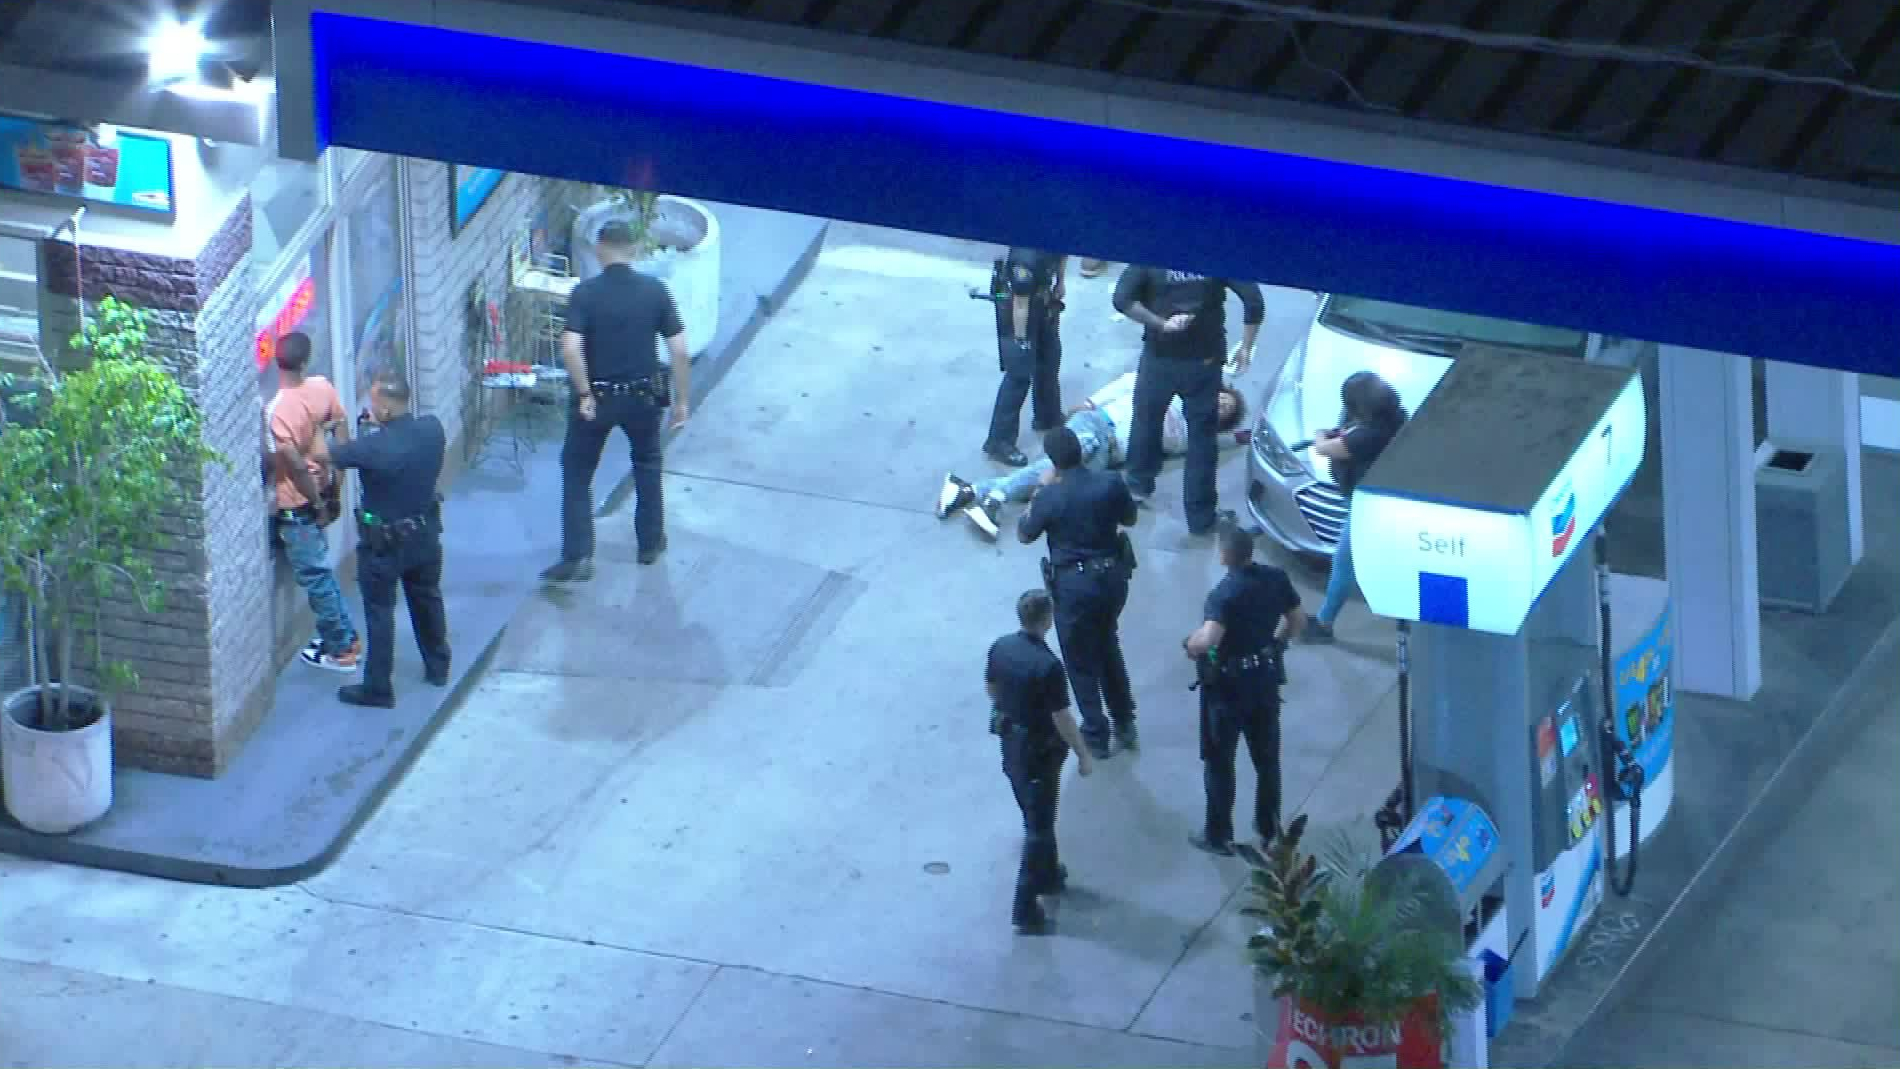 Officers work to detain suspects following a police shooting at a Chevron station on the border of the Adams-Normandie and University Park neighborhoods of South Los Angeles on June 1, 2020. (KTLA)